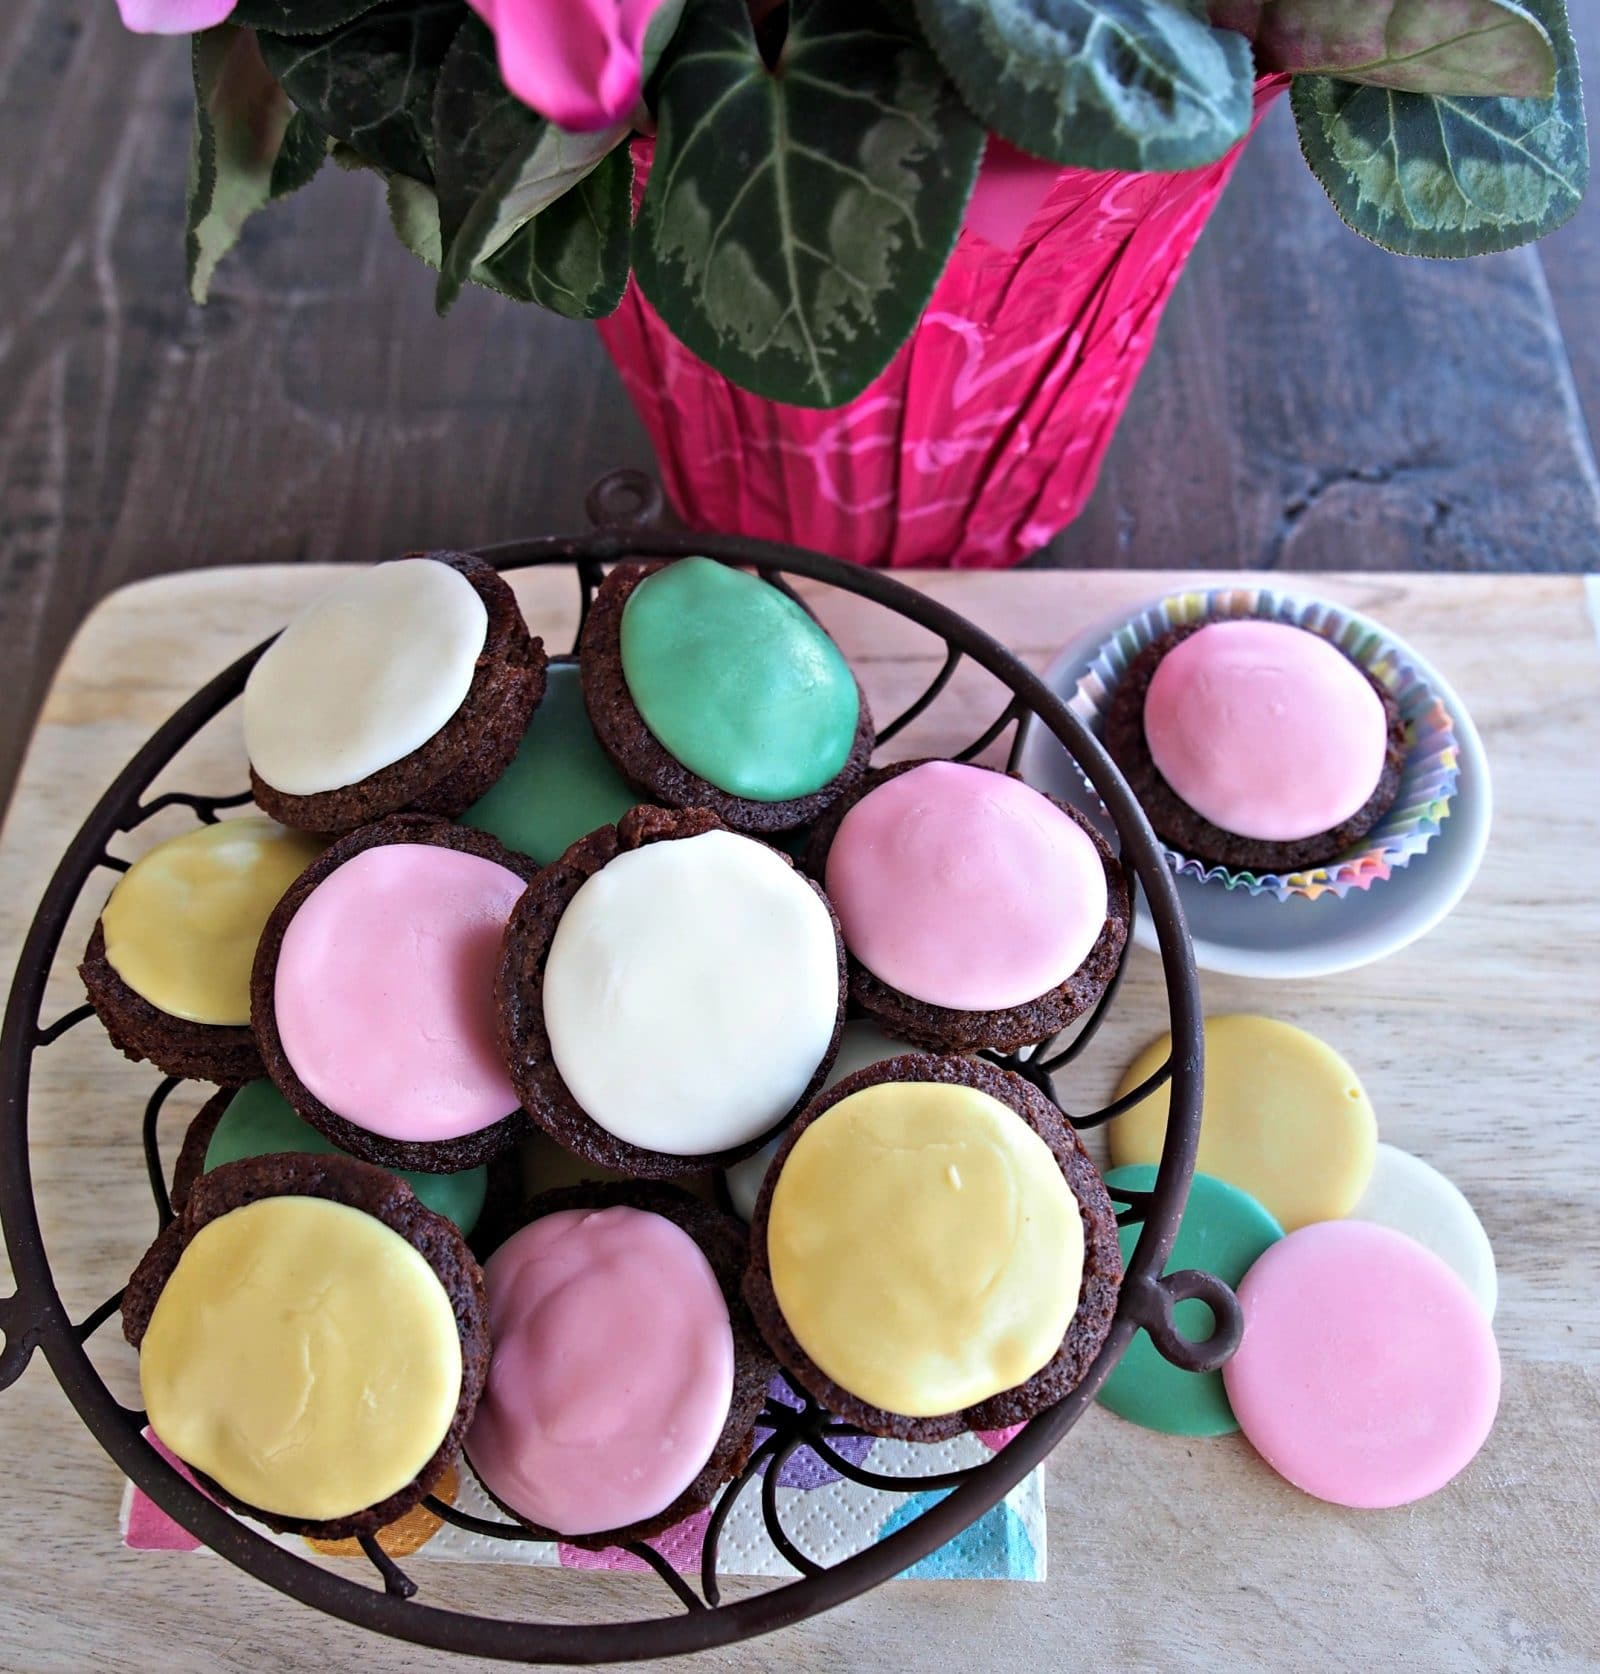 Pastel Mint Brownies are easy, lovely and delicious, and I dare you to eat just one. Brownie mix brownies topped warm with Lammes Candies Sherbet Mints. Simply Sated